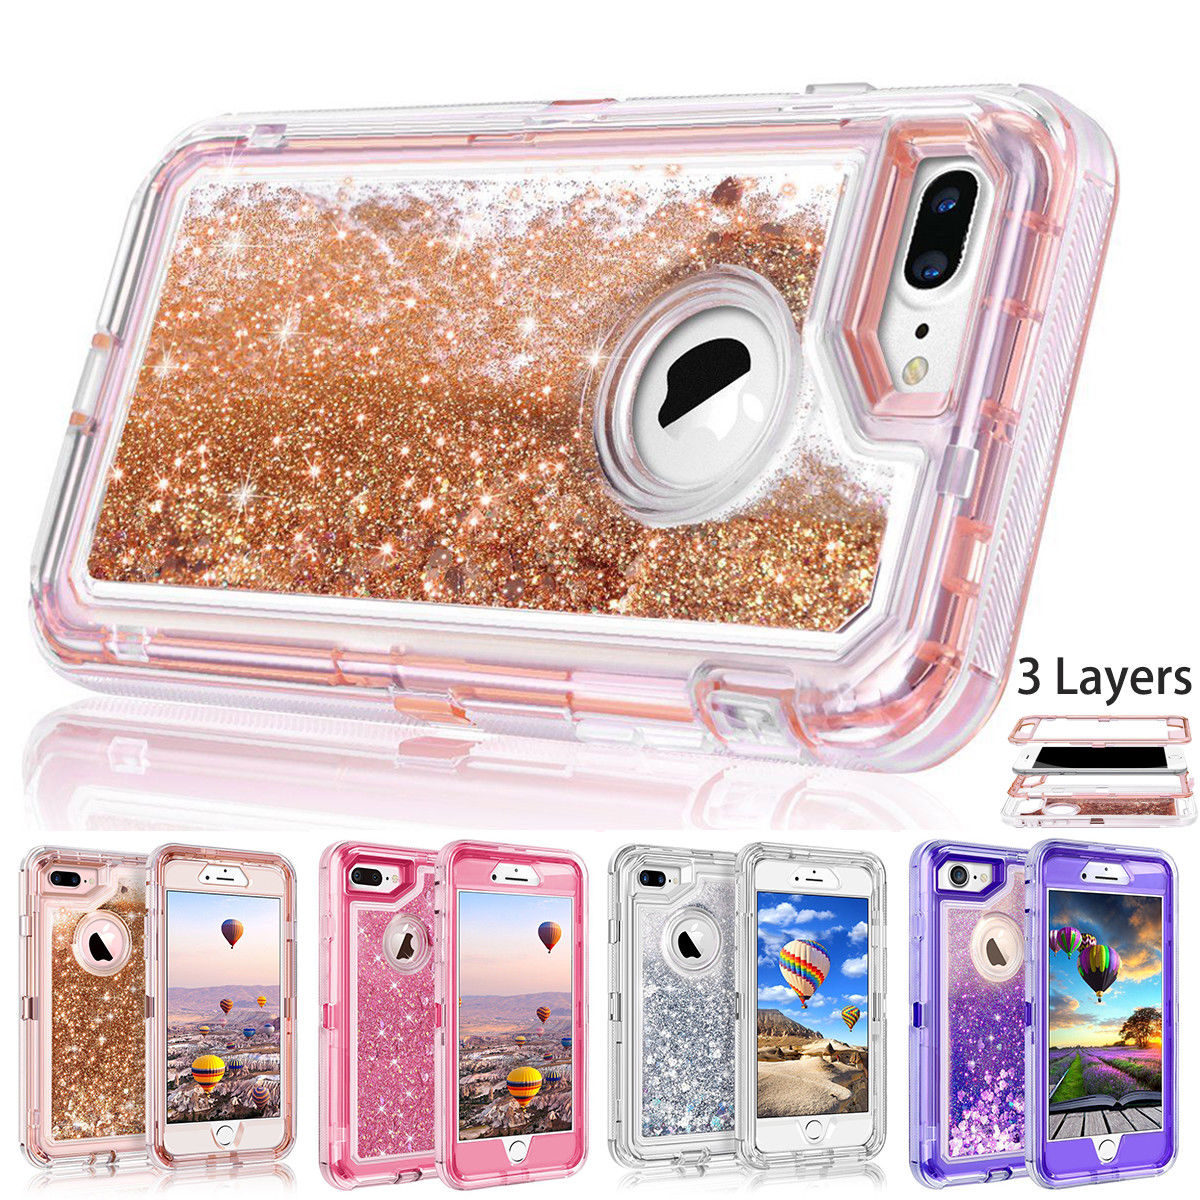 Details about For iPhone XR 8 7 6S Plus XS Max X Glitter Liquid Defender  Heavy Quicksand Case 5851a2299e6c